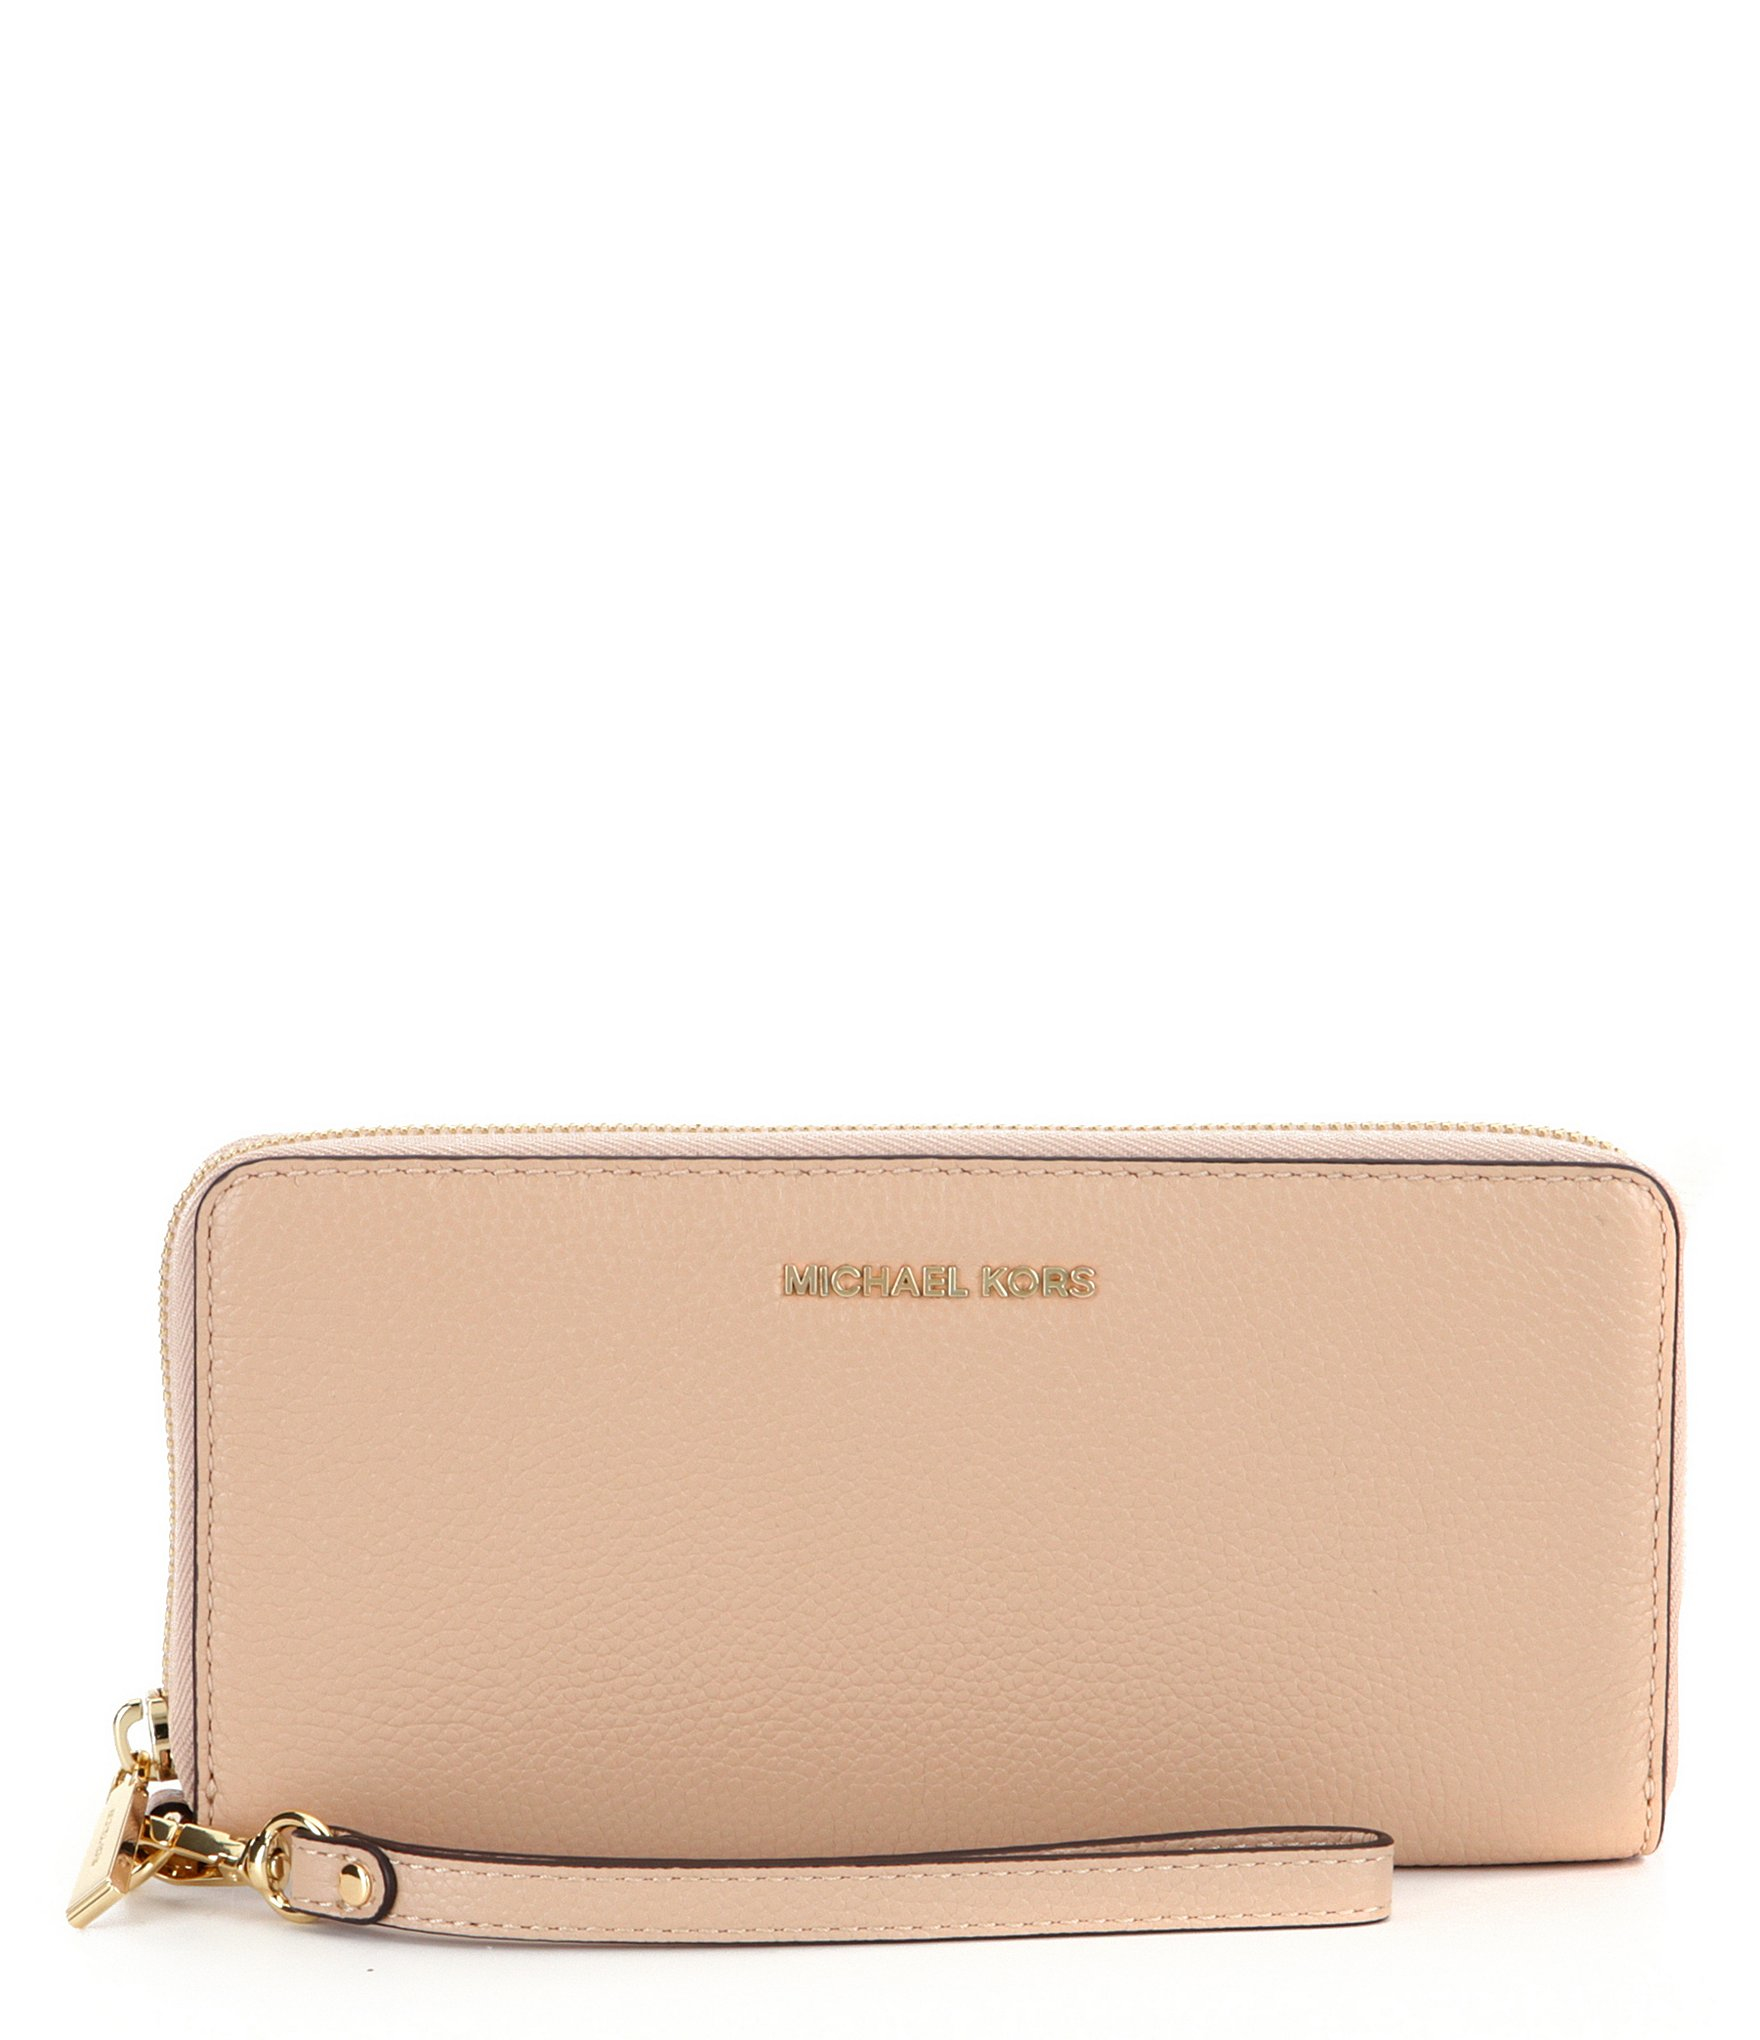 44a626350fa9 MICHAEL Michael Kors Mercer Travel Continental Wallet in Natural - Lyst